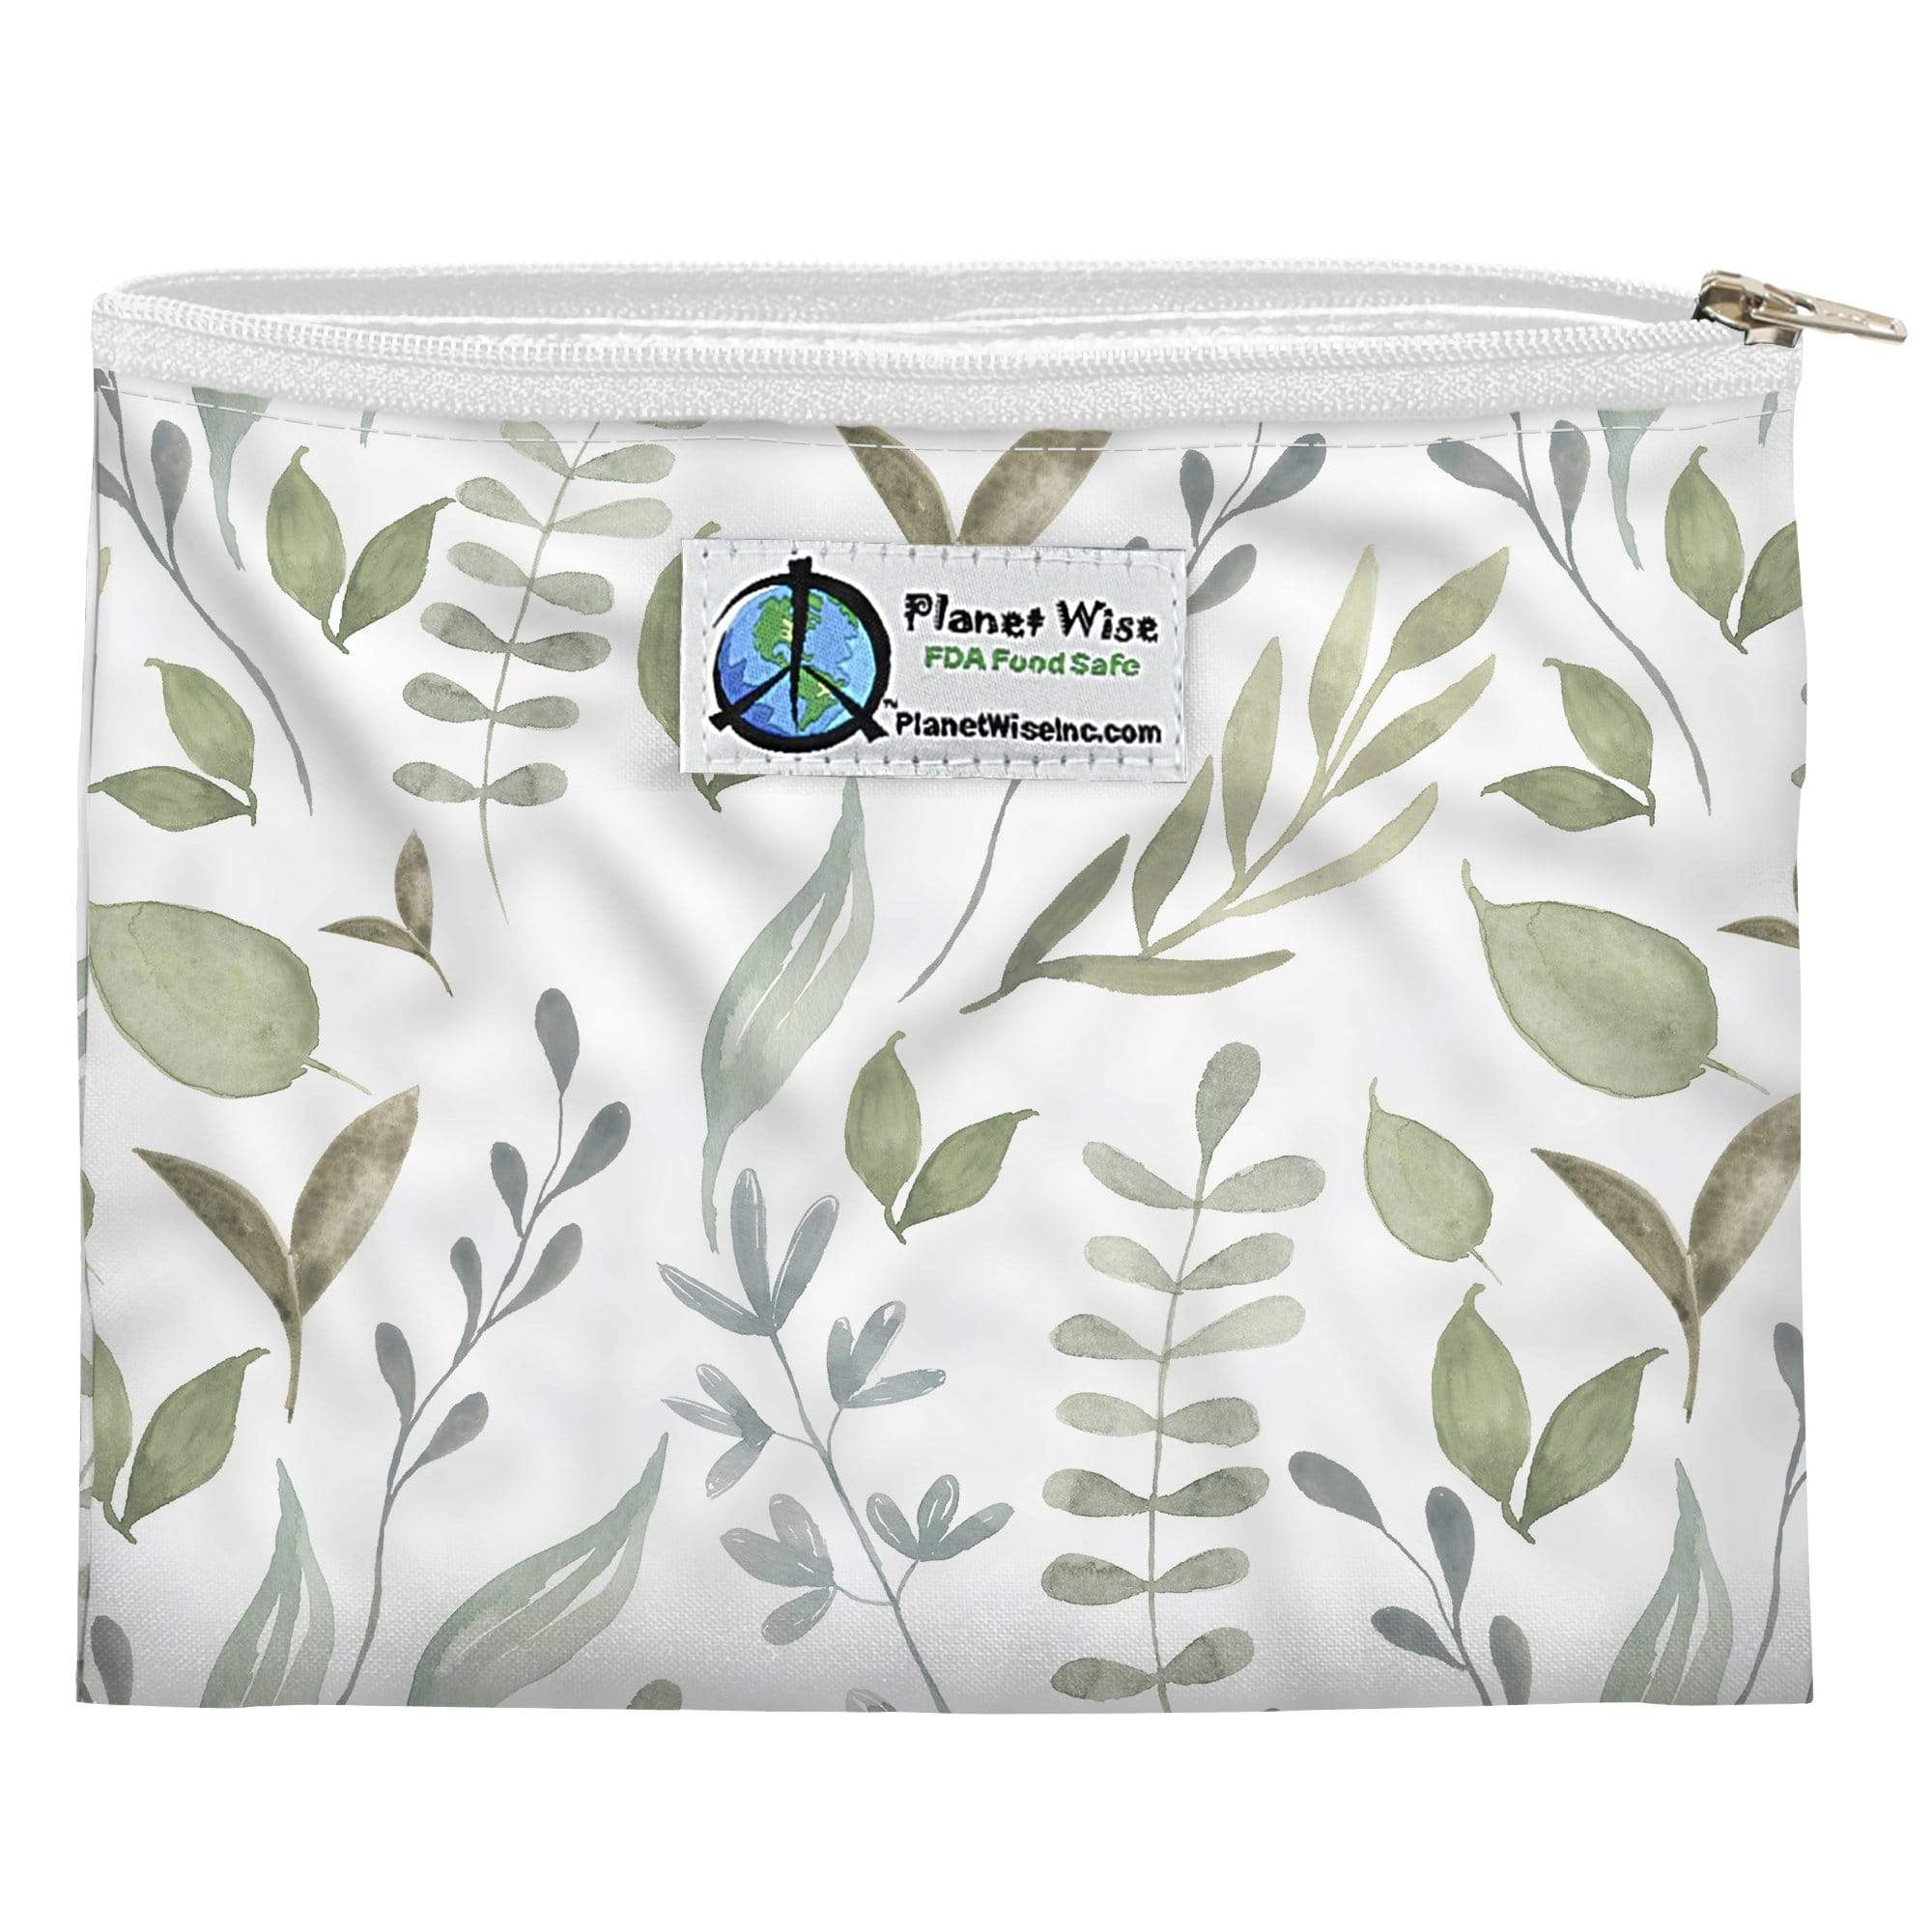 Planet Wise Reusable Zipper Sandwich Bag - Beleaf In Yourself Performance